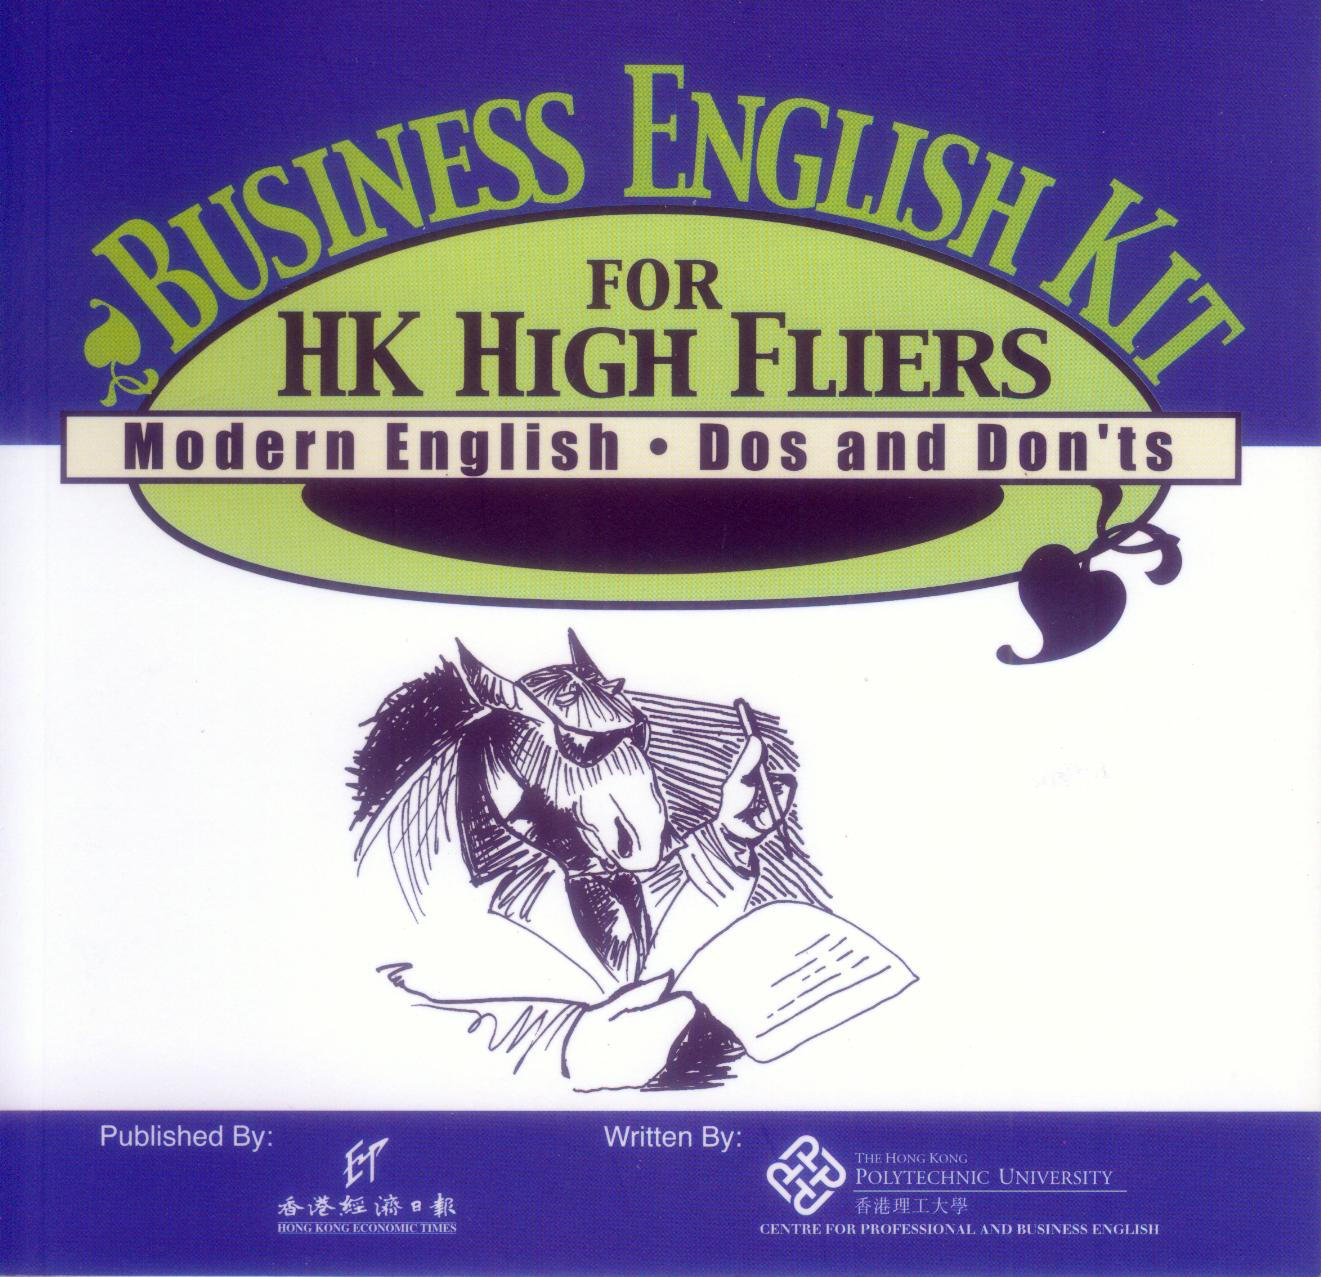 Business English Kit For HK High Fliers